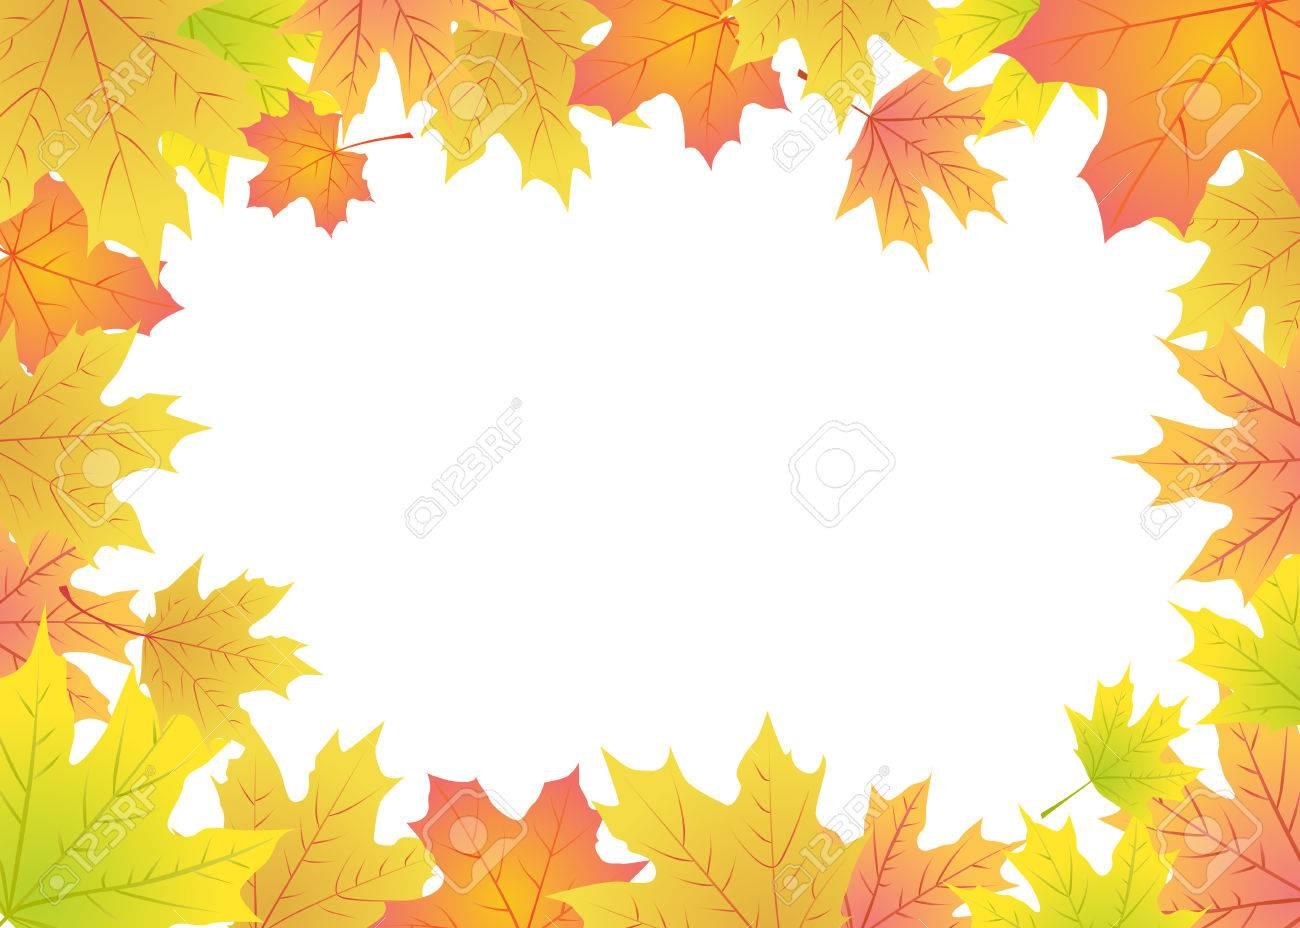 Autumn Maple Leaves Frame With Place For Text Royalty Free Cliparts ...